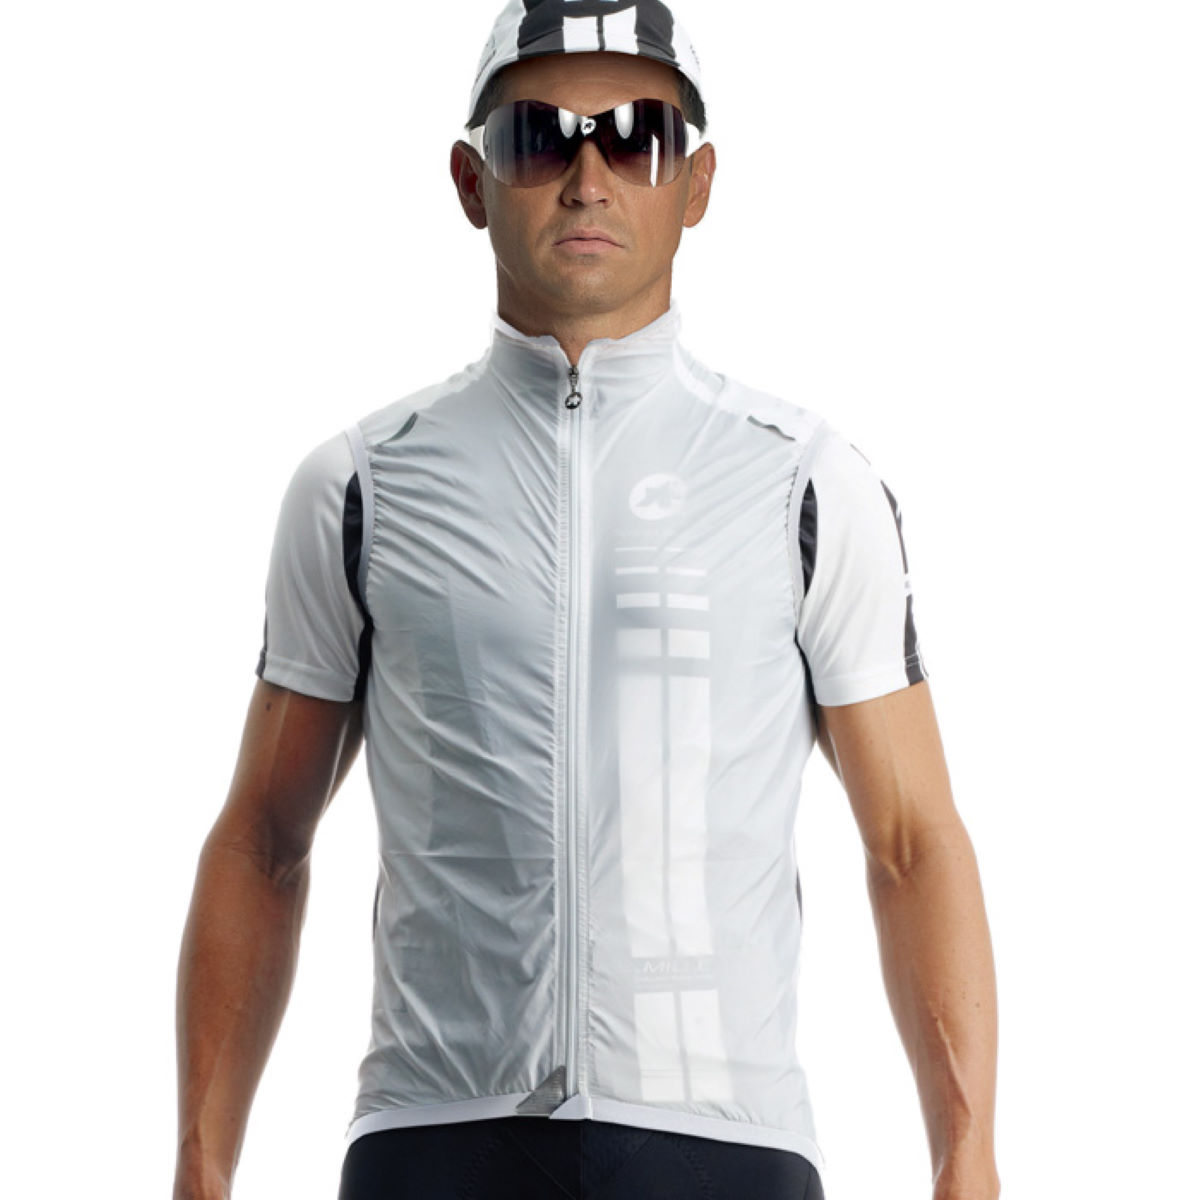 Gilet sans manches Assos sV.blitzFeder - XLG White Panther